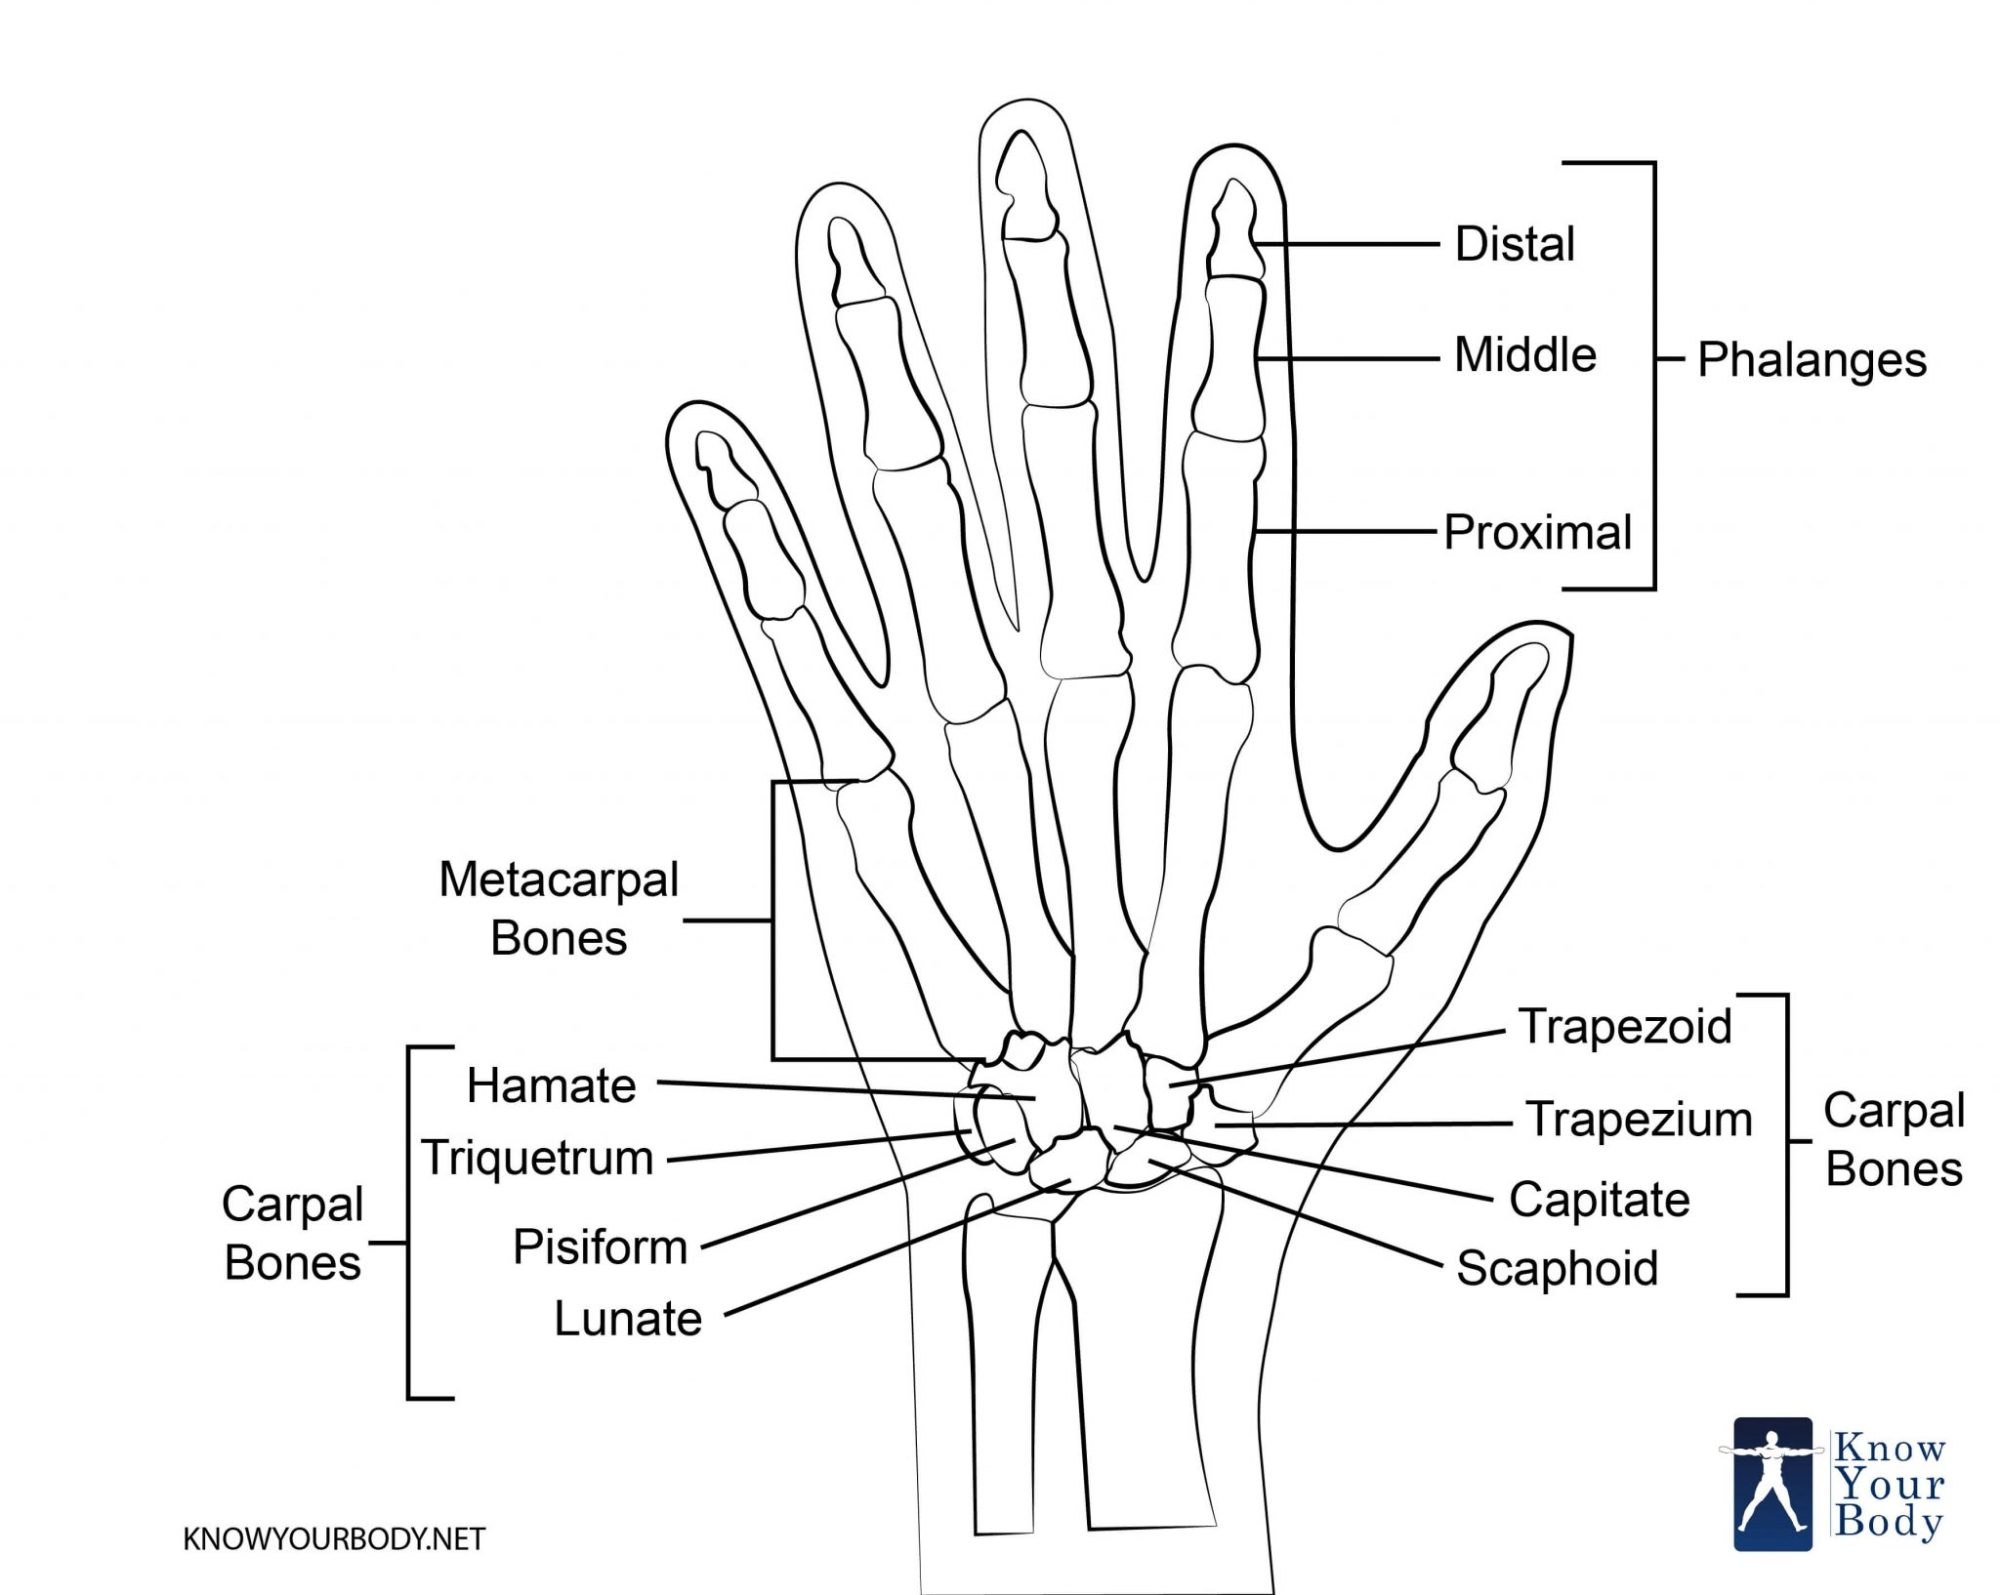 hight resolution of hand bones anatomy structure and diagram dorsal interossei of the hand hand bones diagram